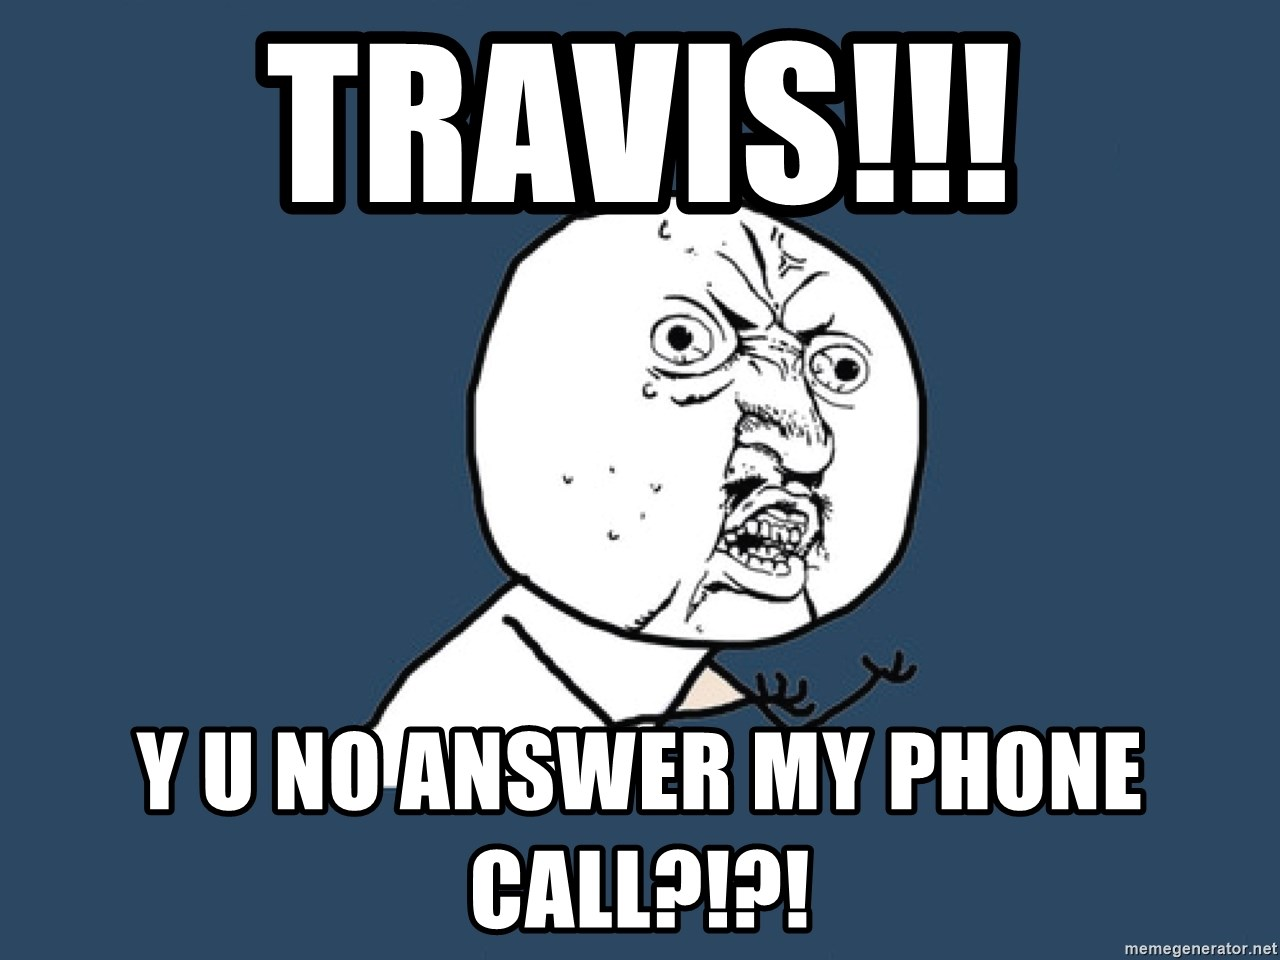 Y U No - TRAVIS!!! Y U NO ANSWER MY PHONE CALL?!?!